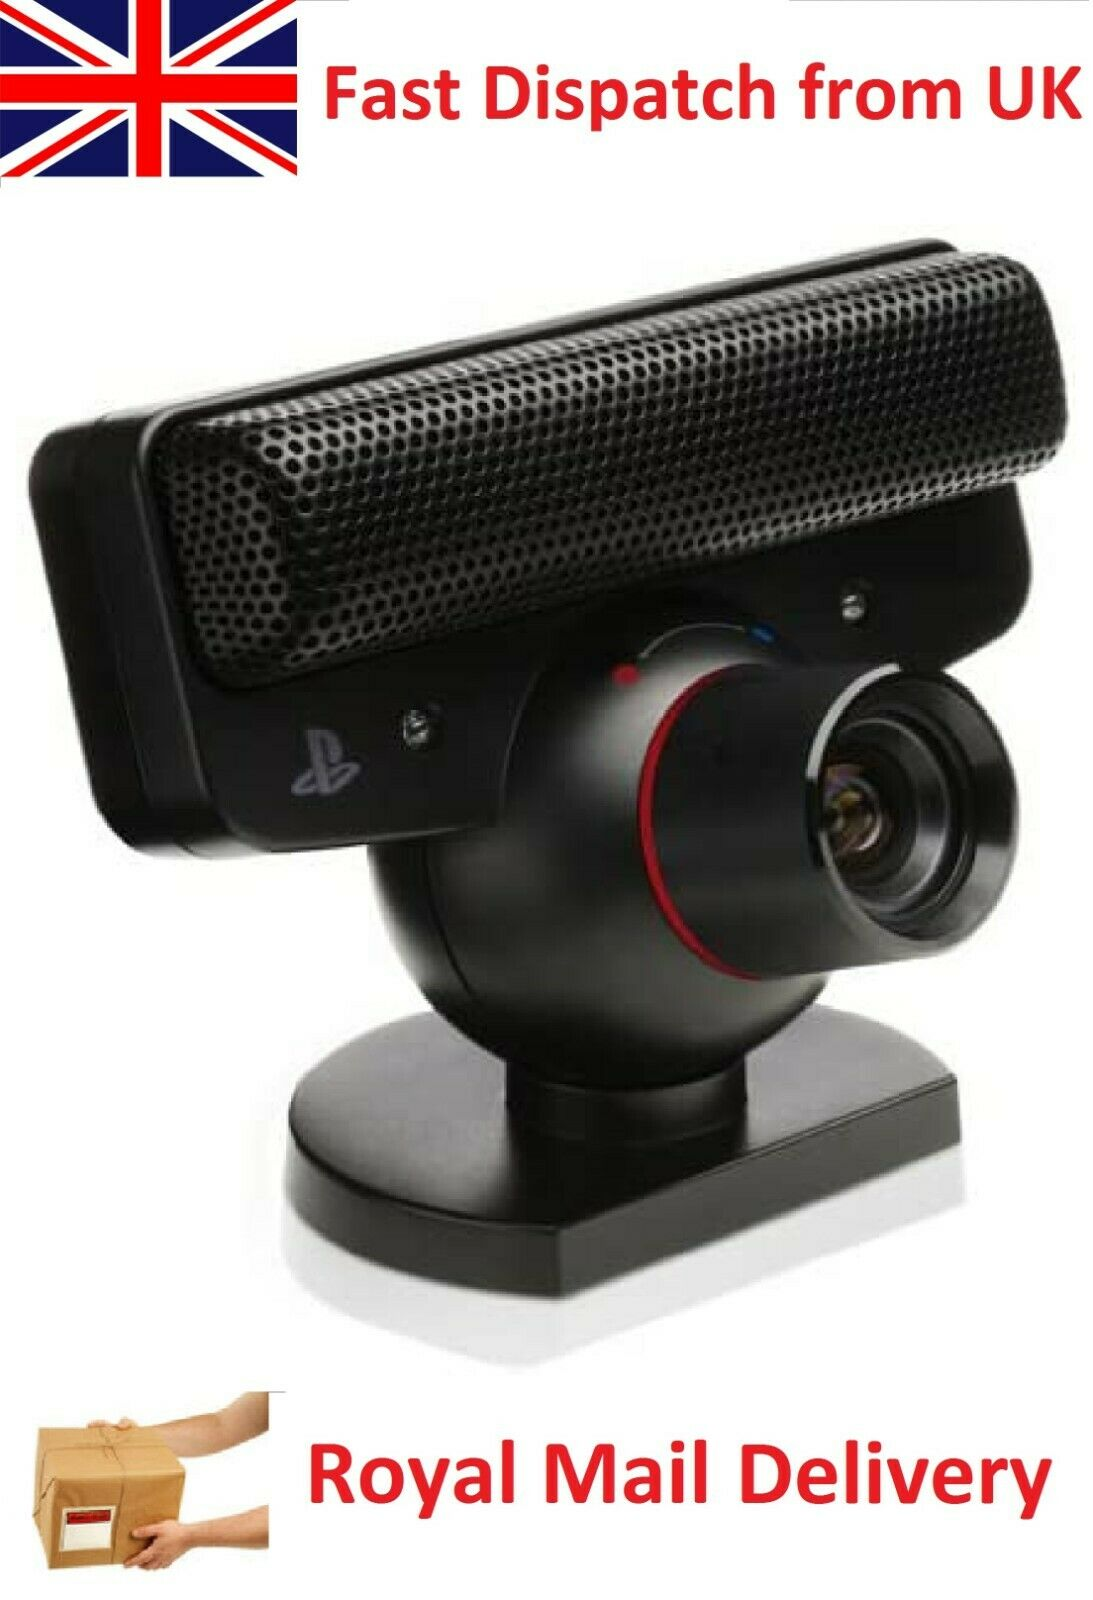 Official Sony Playstation 3 Camera PS3 USB Move Cam Eye Toy with Mic for Games